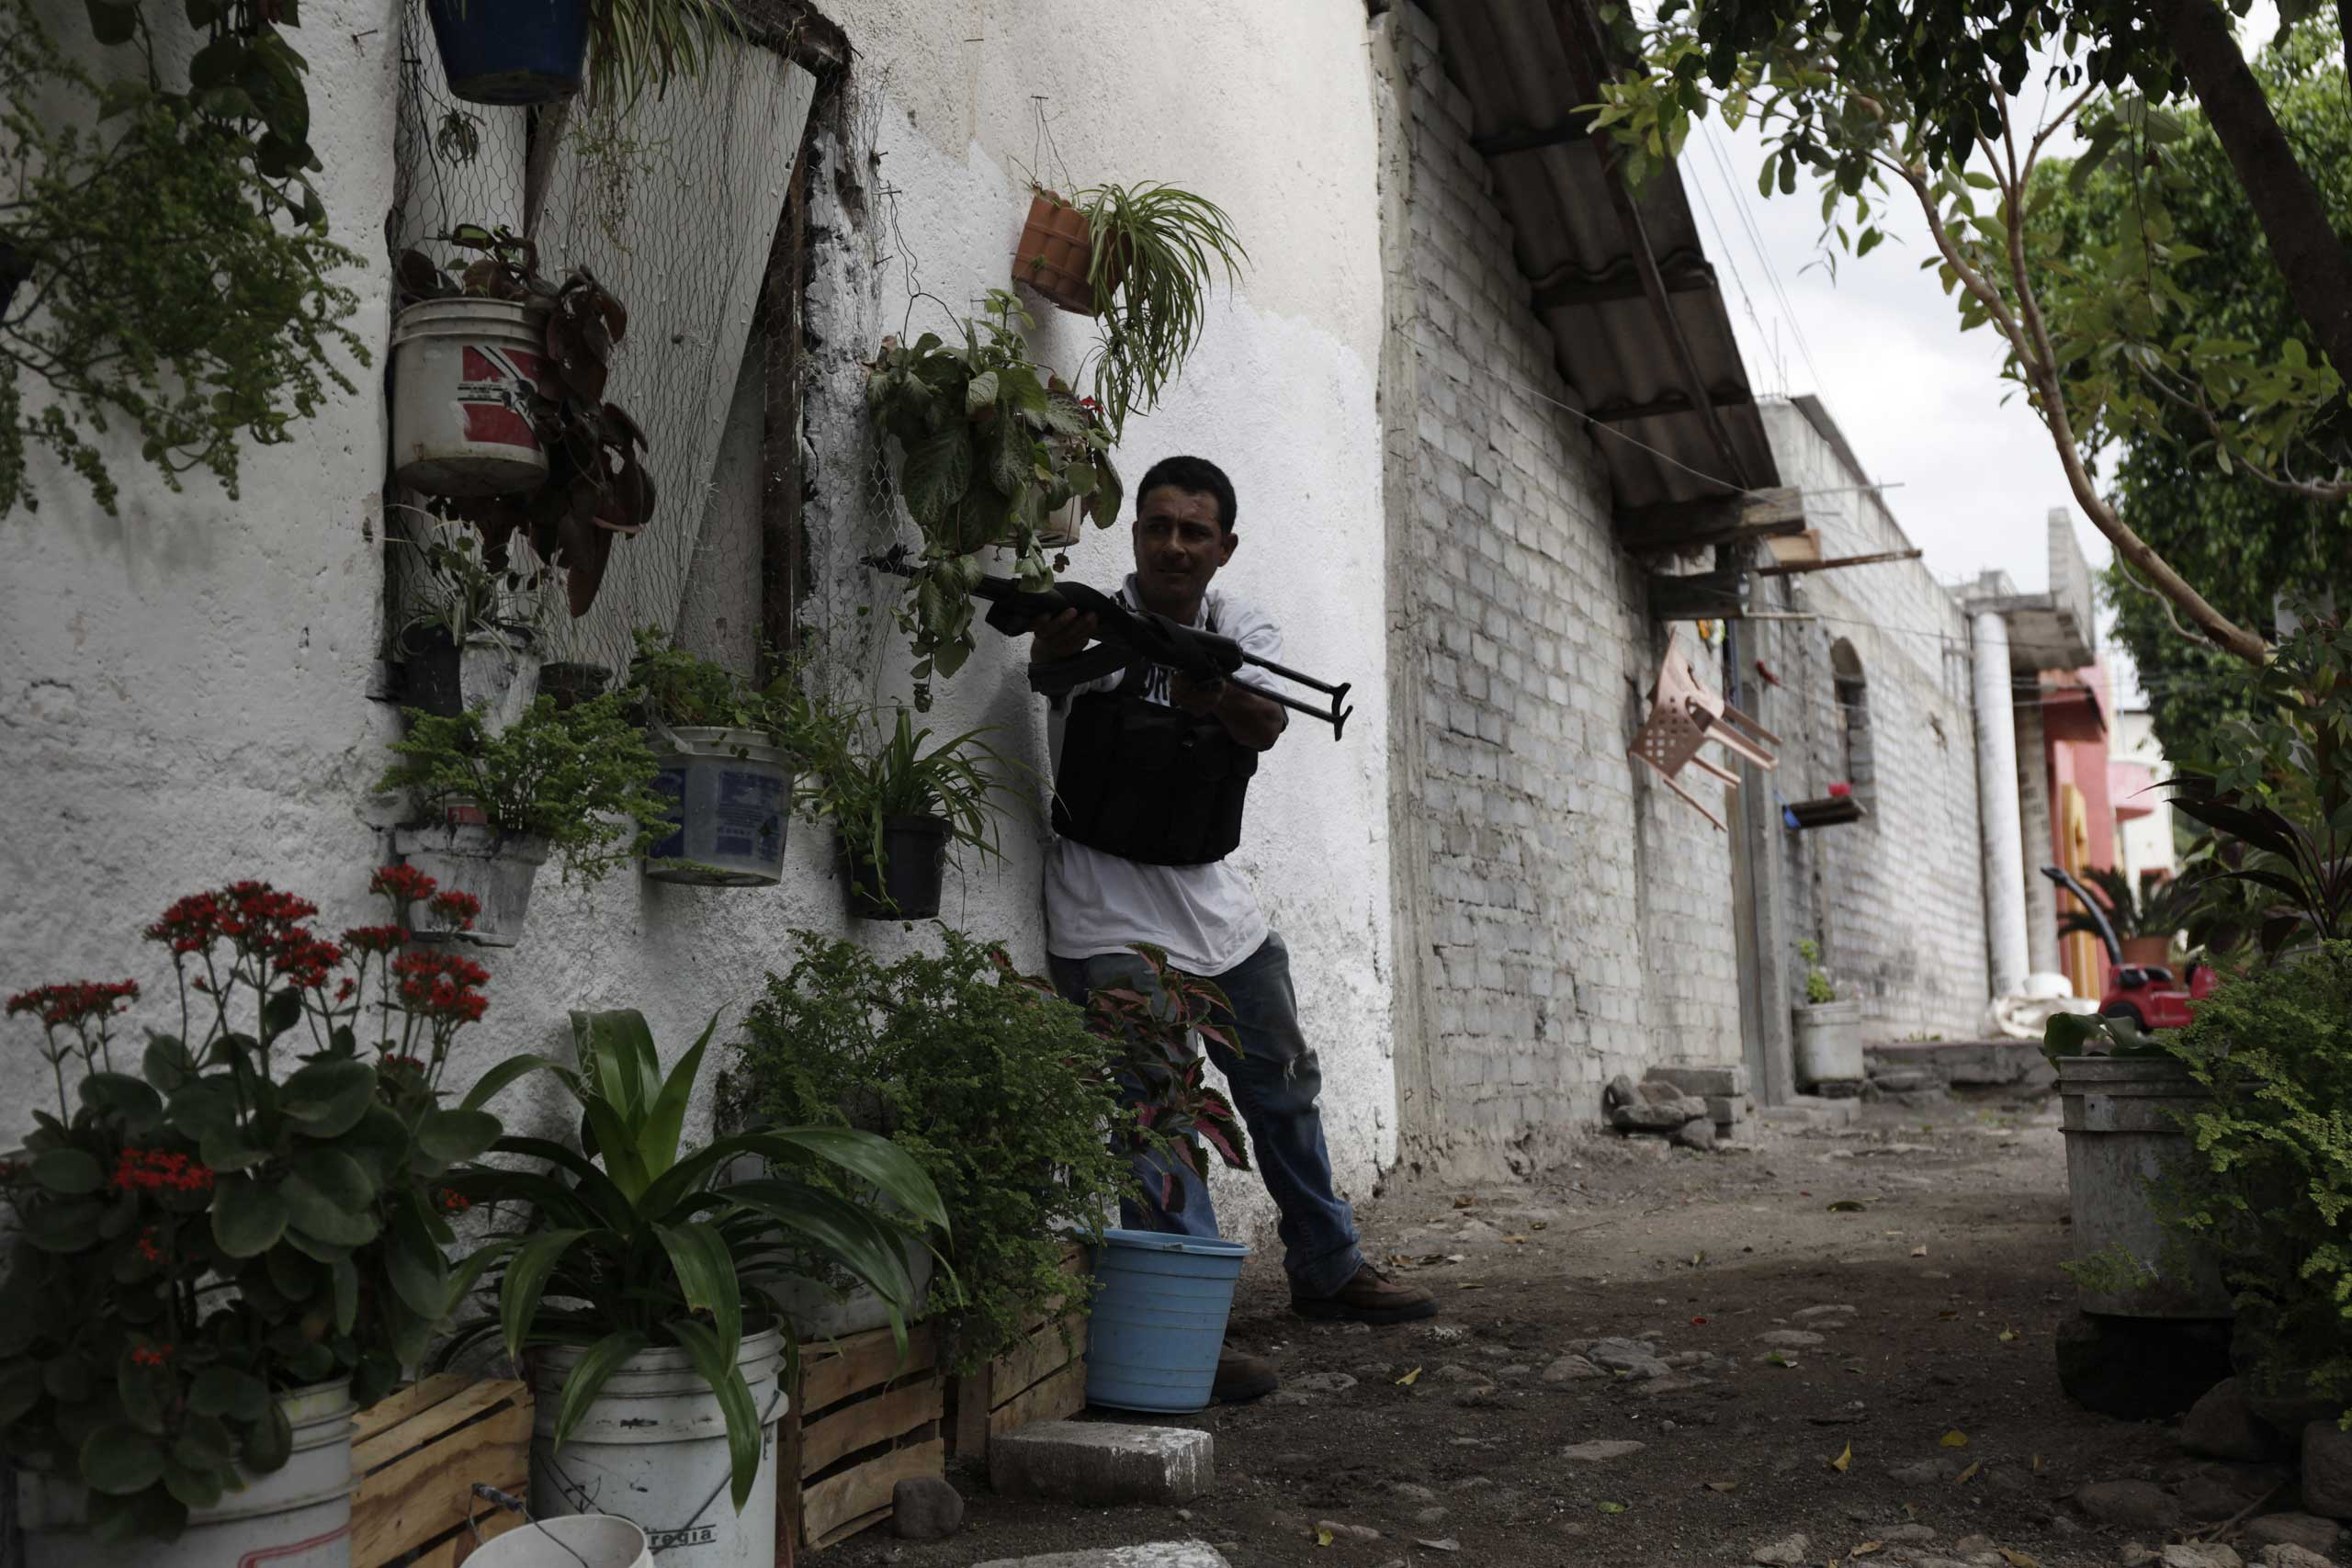 Jan. 12, 2014. A three-hour gunfight between vigilantes and the Knights Templar cartel continues in downtown Nueva Italia, Michoac‡n, Mexico.